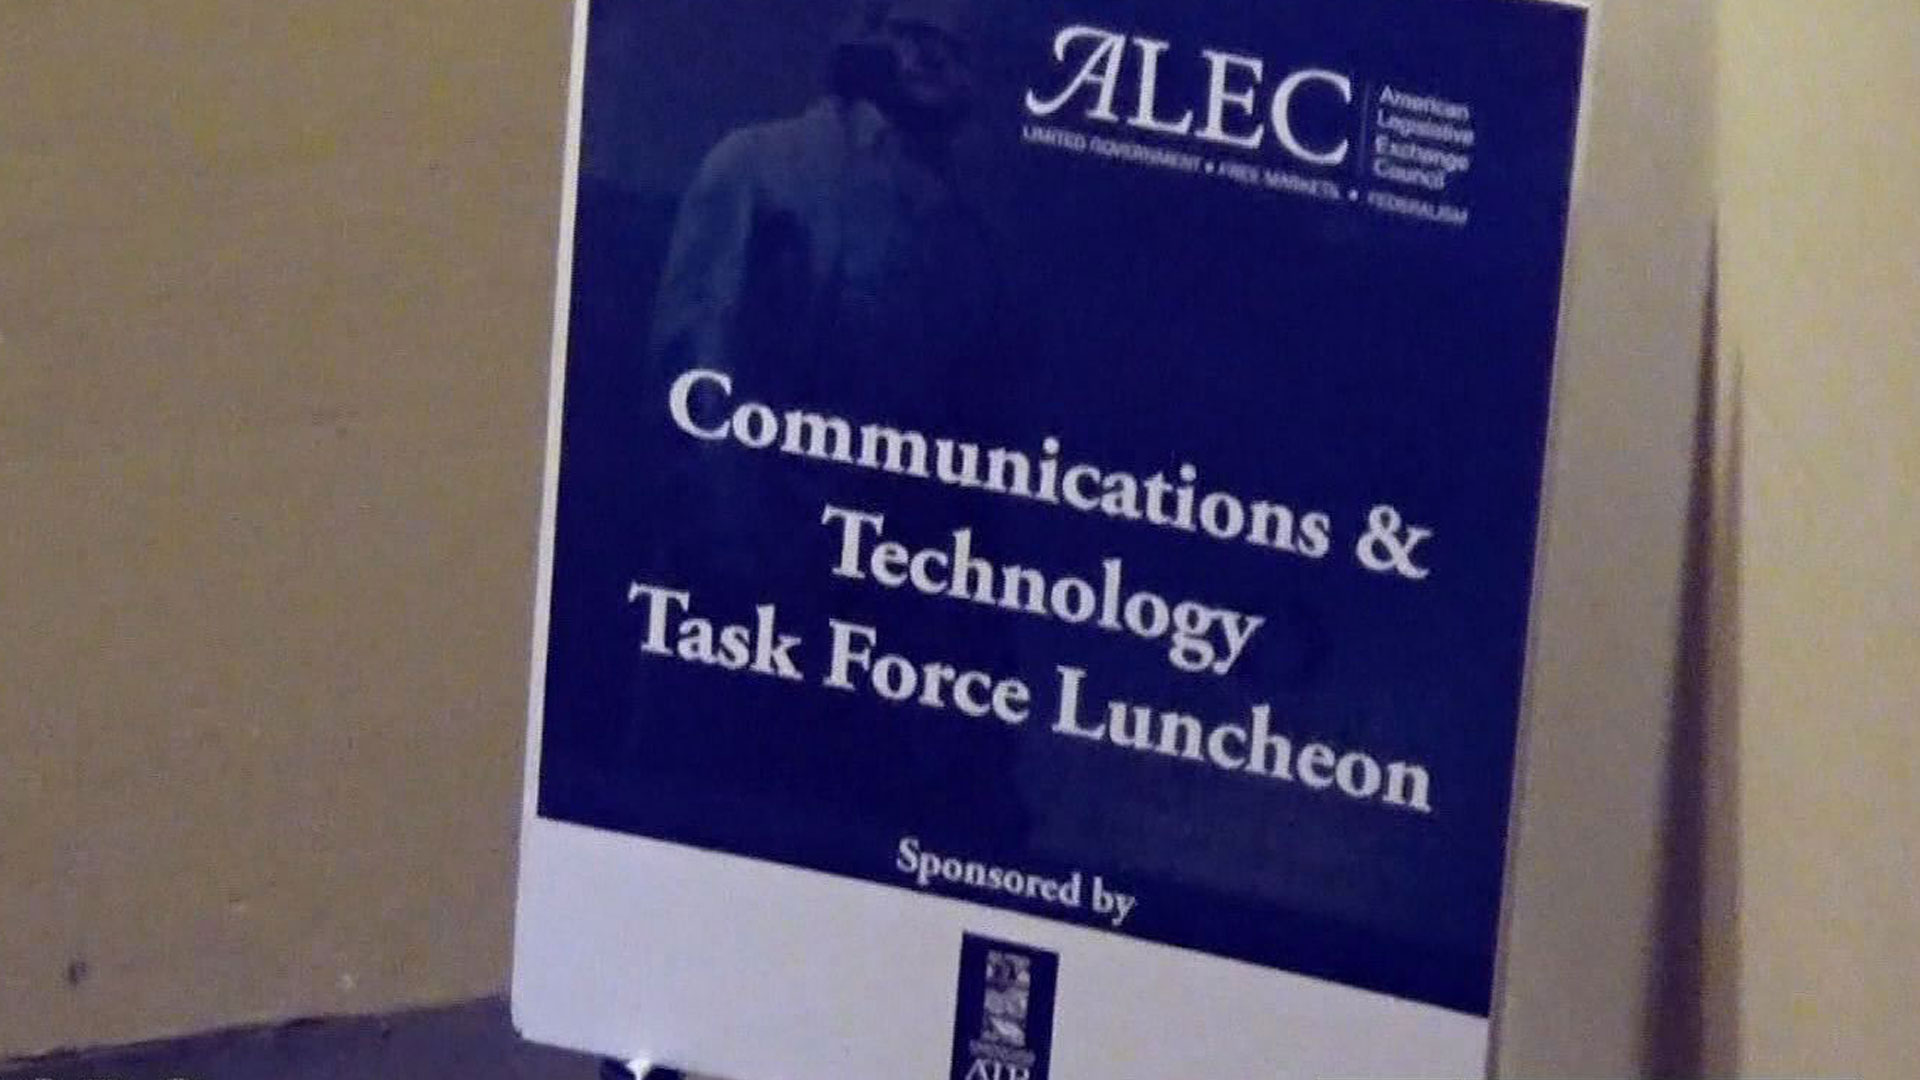 ALEC: The American Legislative Exchange Council